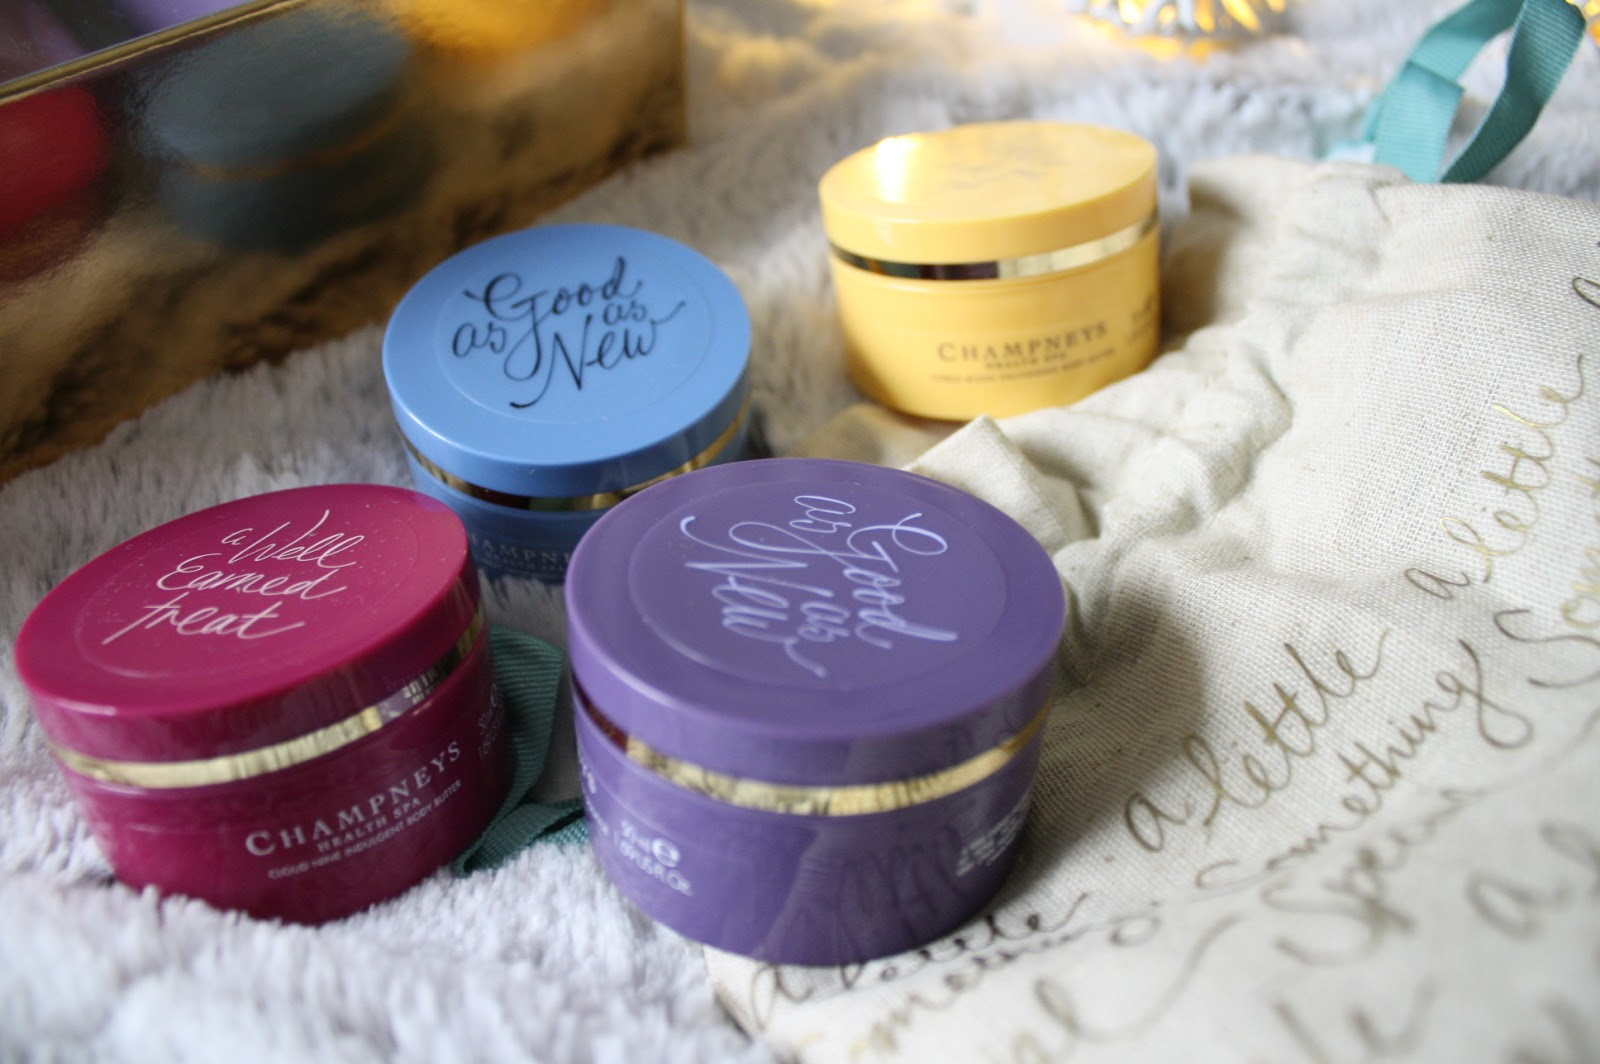 Champneys Body Butters